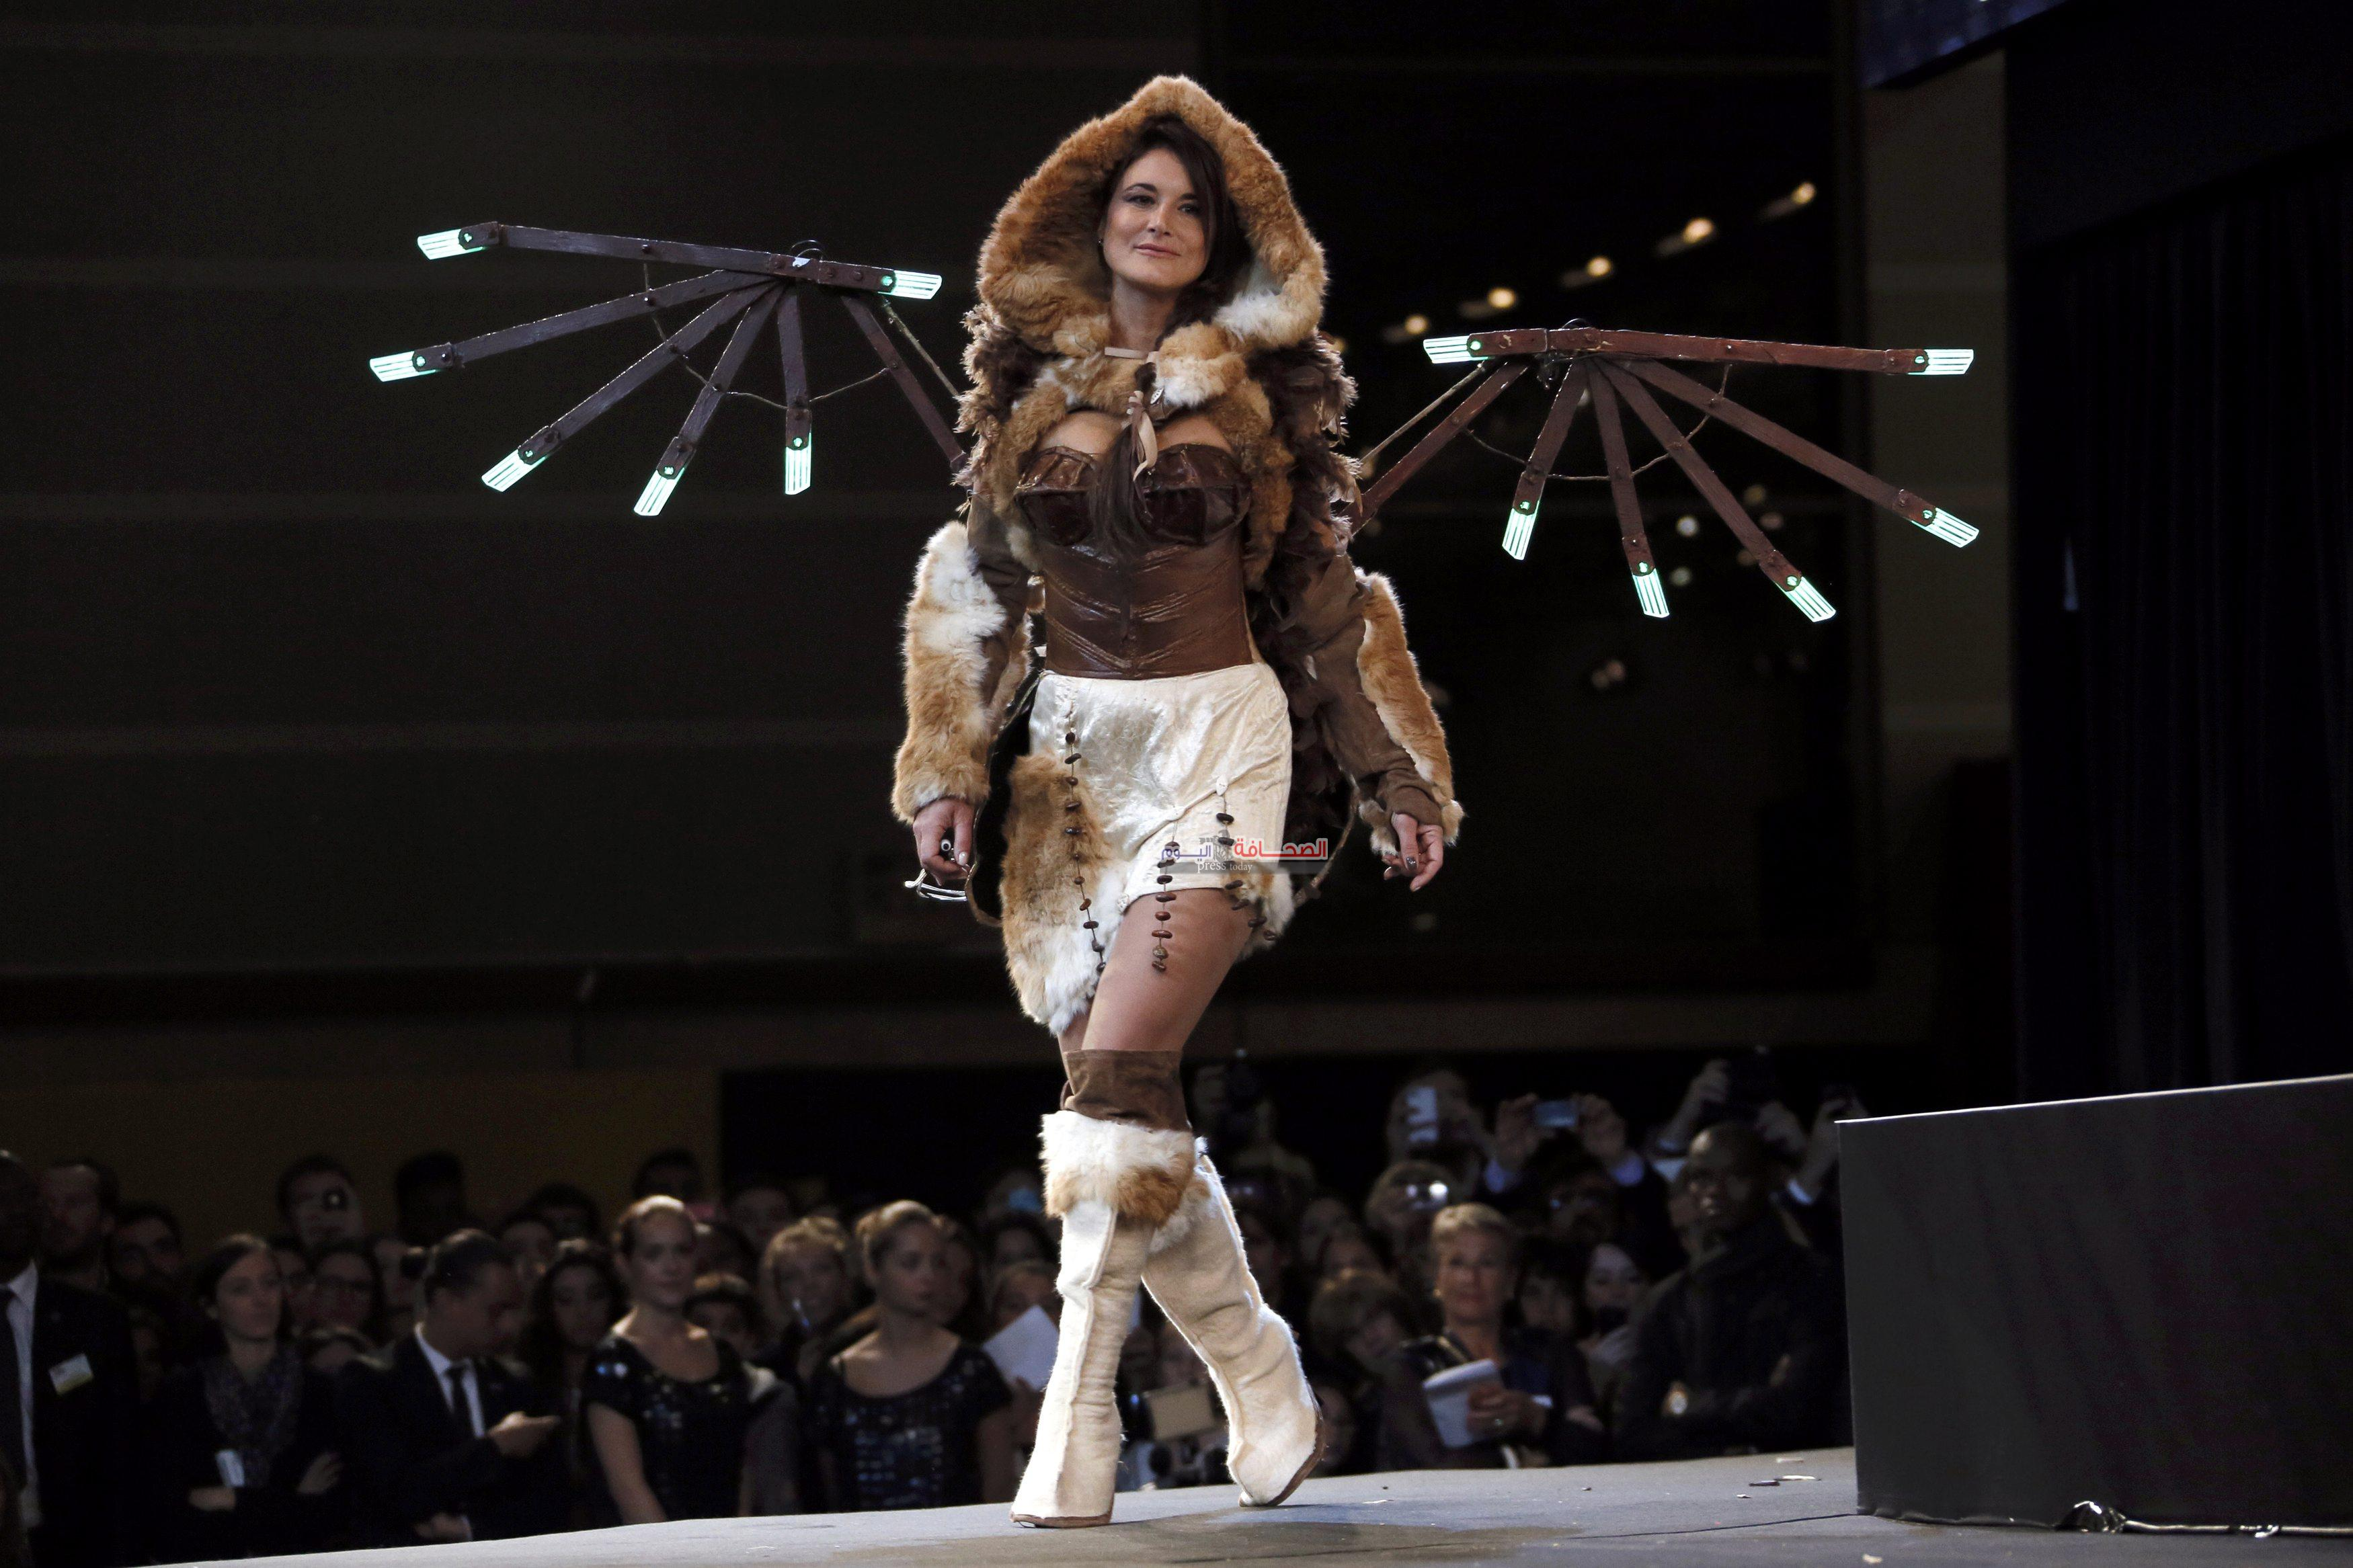 A model presents a creation at the 20th Salon du Chocolat, (Paris Chocolate Show) in Paris October 28, 2014.         REUTERS/Gonzalo Fuentes (FRANCE  - Tags: SOCIETY FASHION)